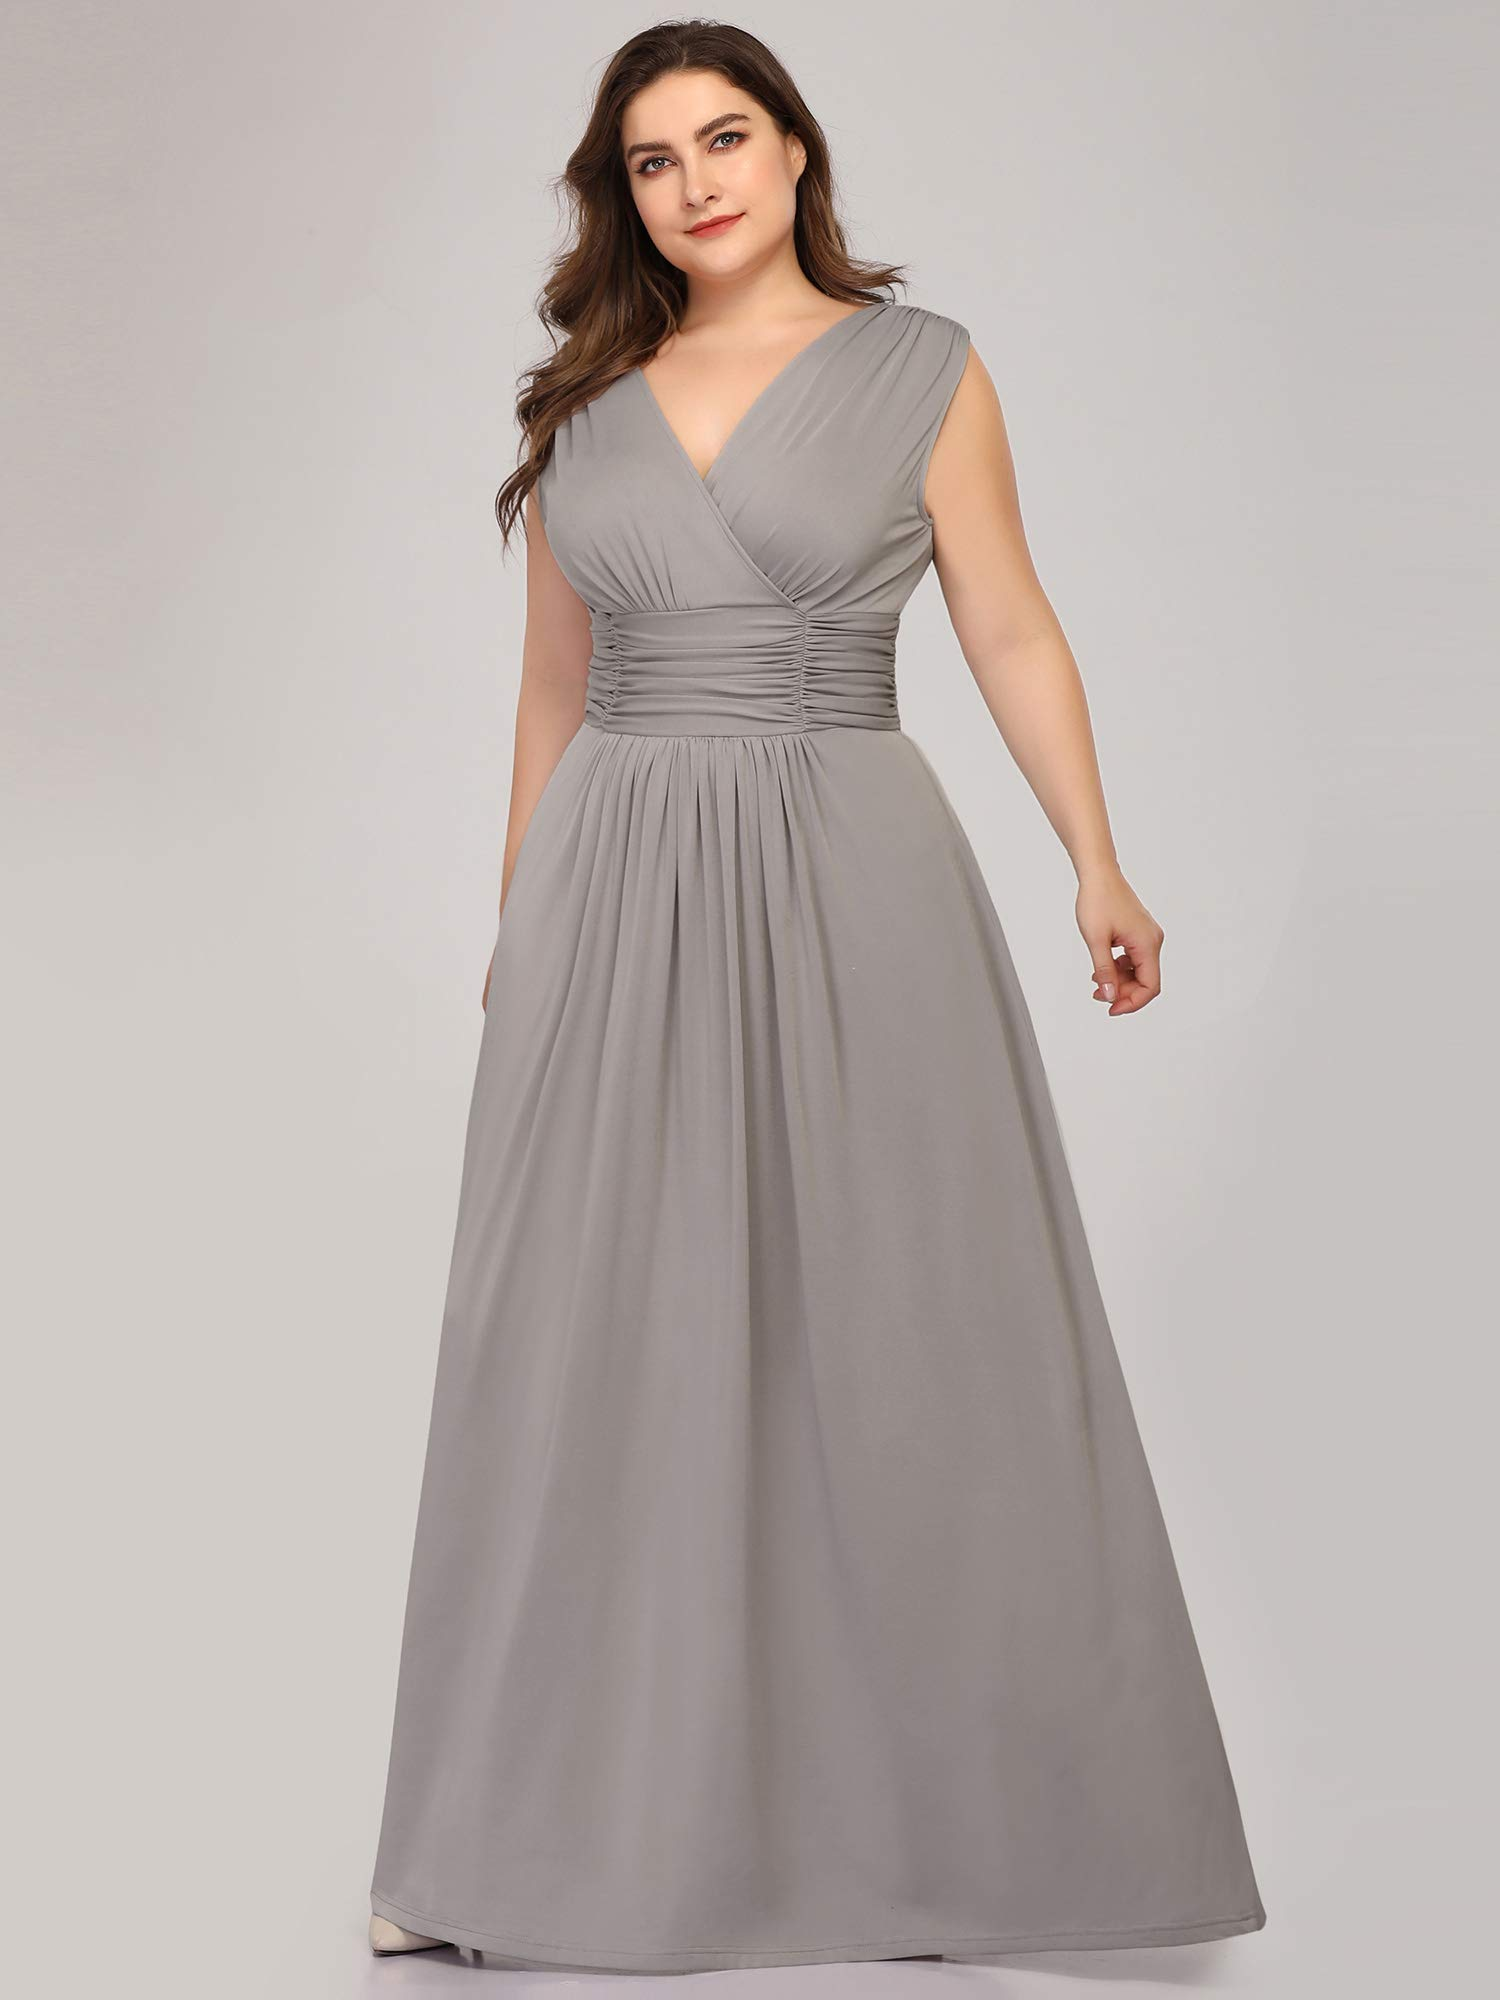 Ever-Pretty Women\'s Plus Size Bridesmaid Dress Wedding Party Maxi Dress  Gray US22